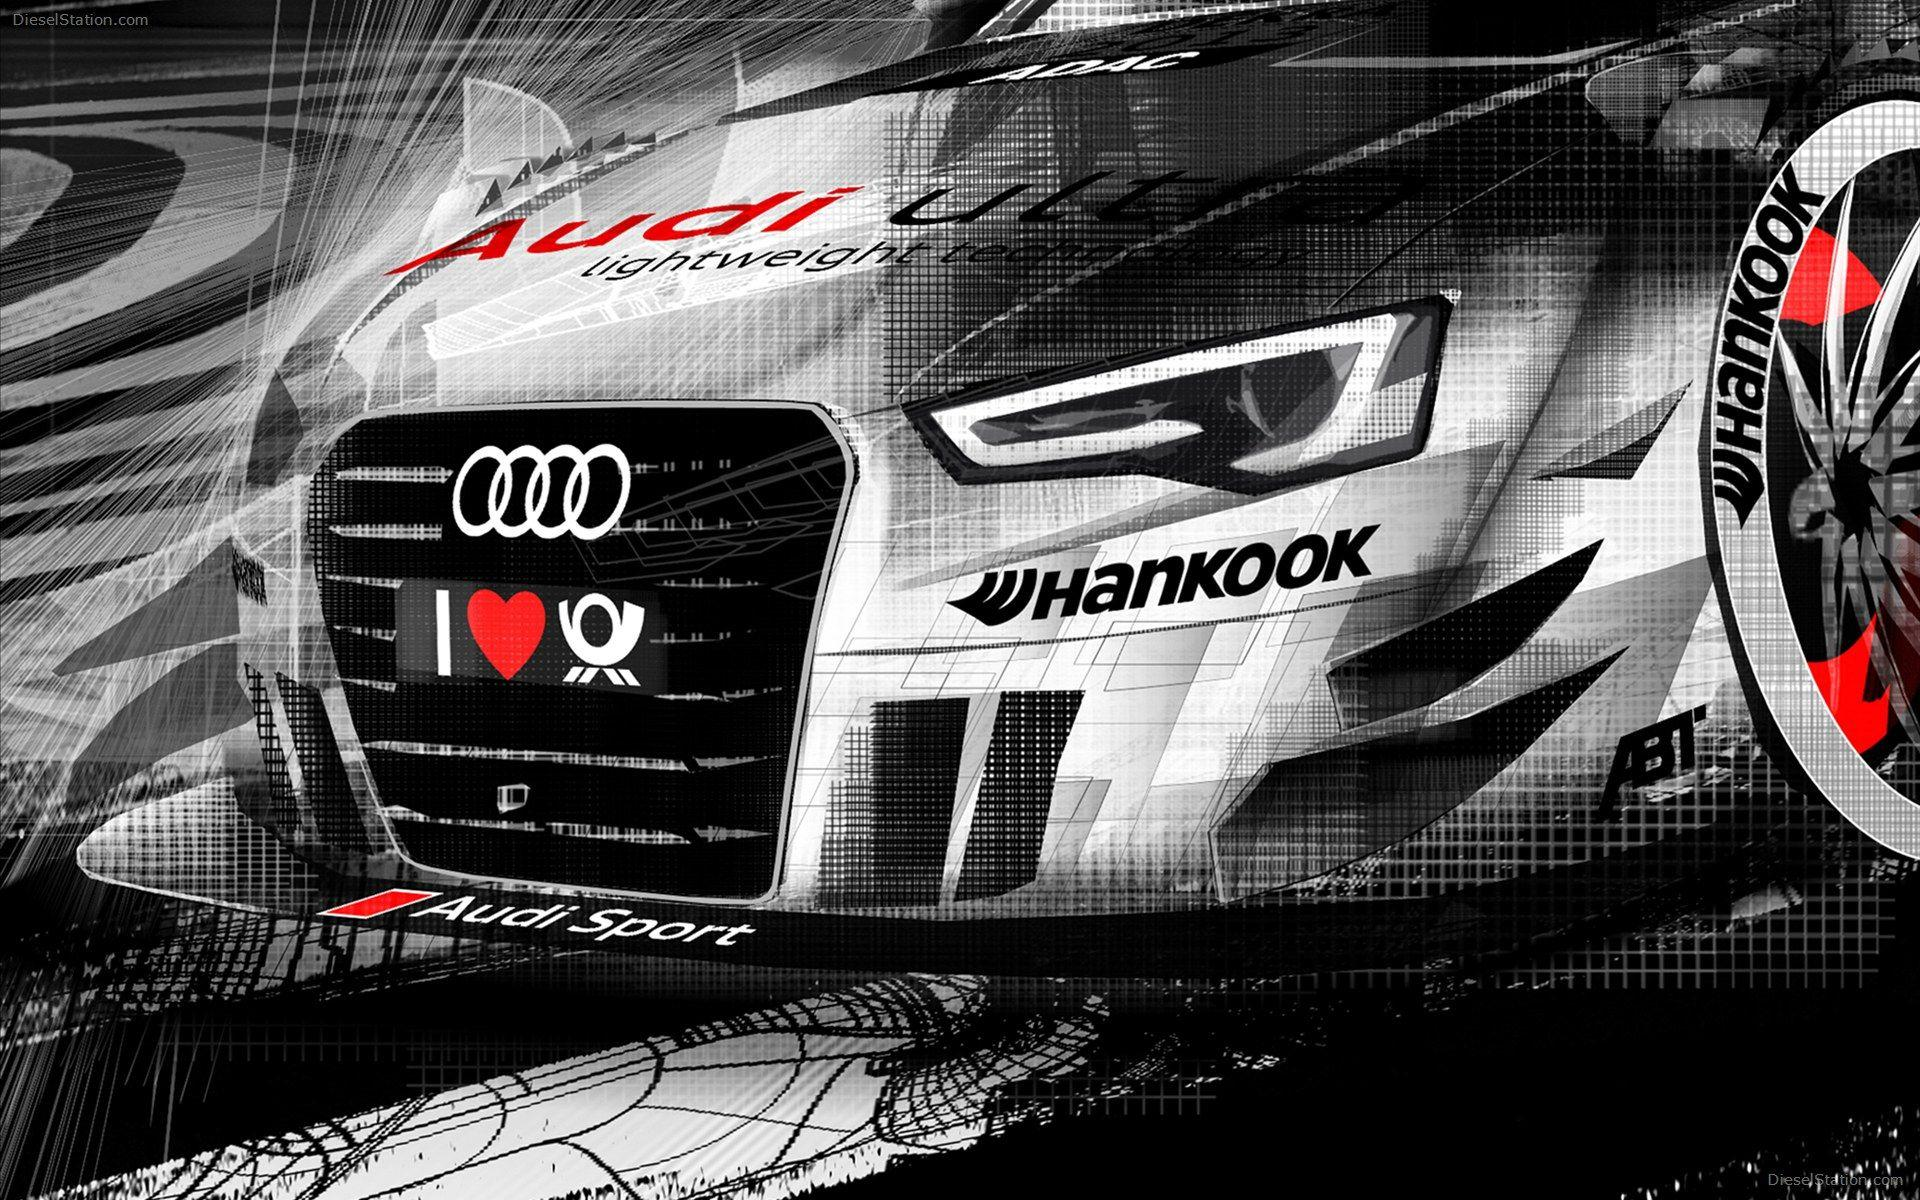 Audi RS 5 DTM 2013 Widescreen Exotic Car Image #04 of 22 : Diesel ...